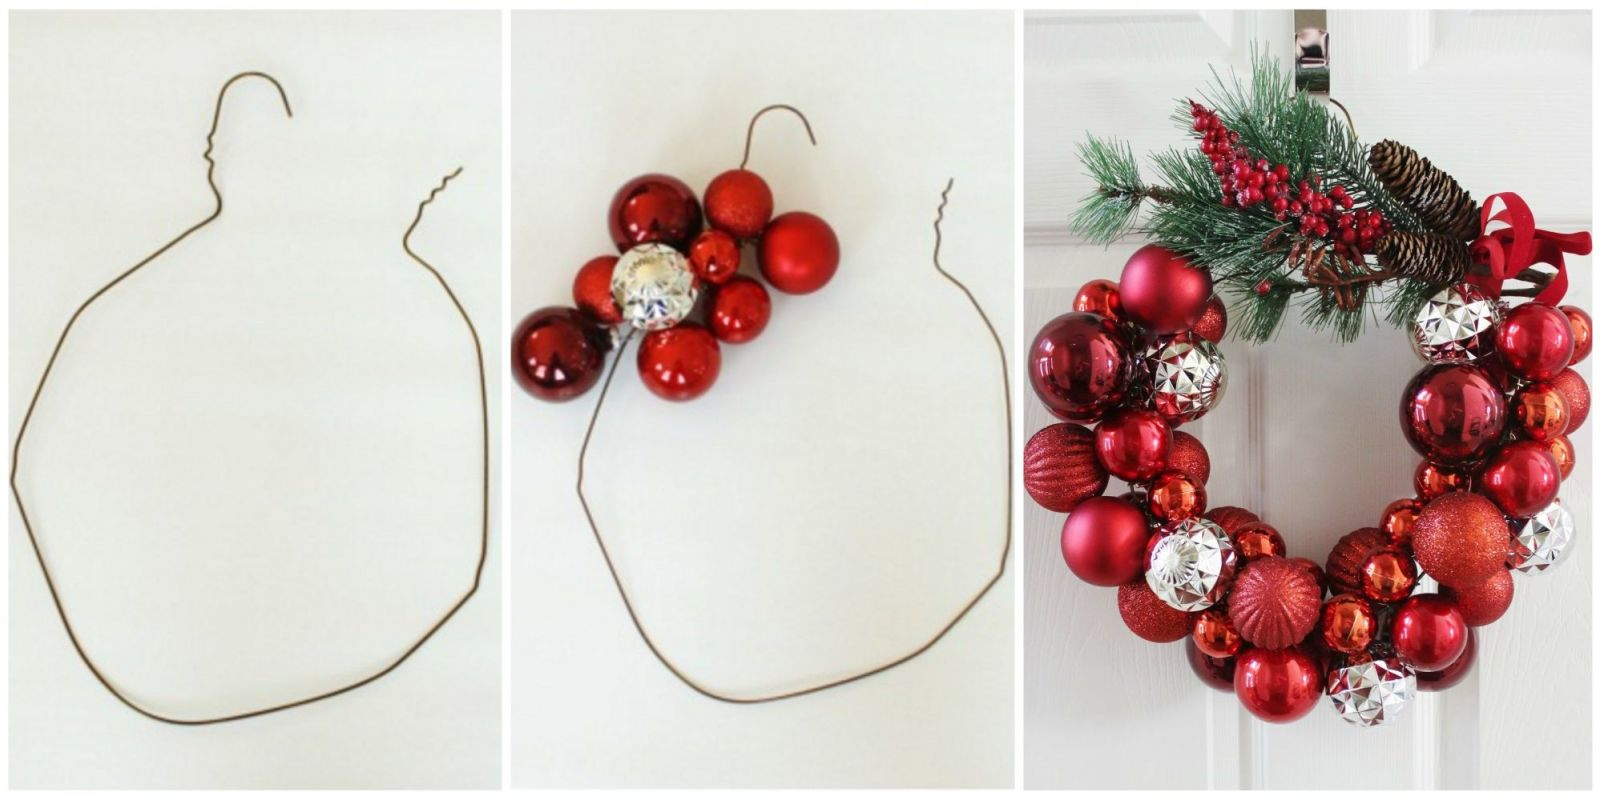 Diy Wreath Hanger How To Make A Christmas Wreath With A Wire Hanger Diy